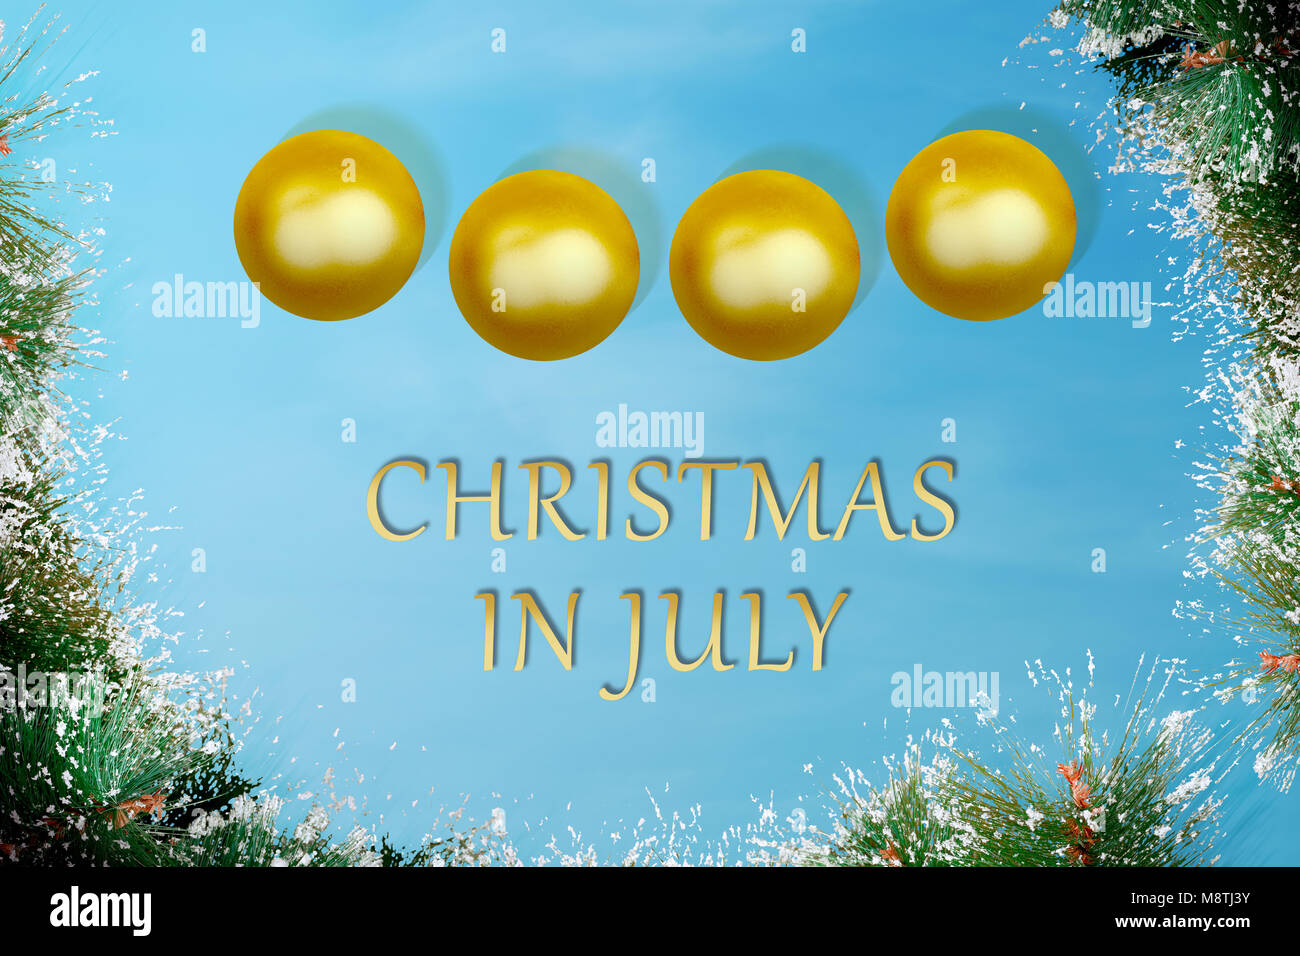 Christmas In July Background Images.Golden Christmas Ball With Pines Tree Leaf On Christmas In